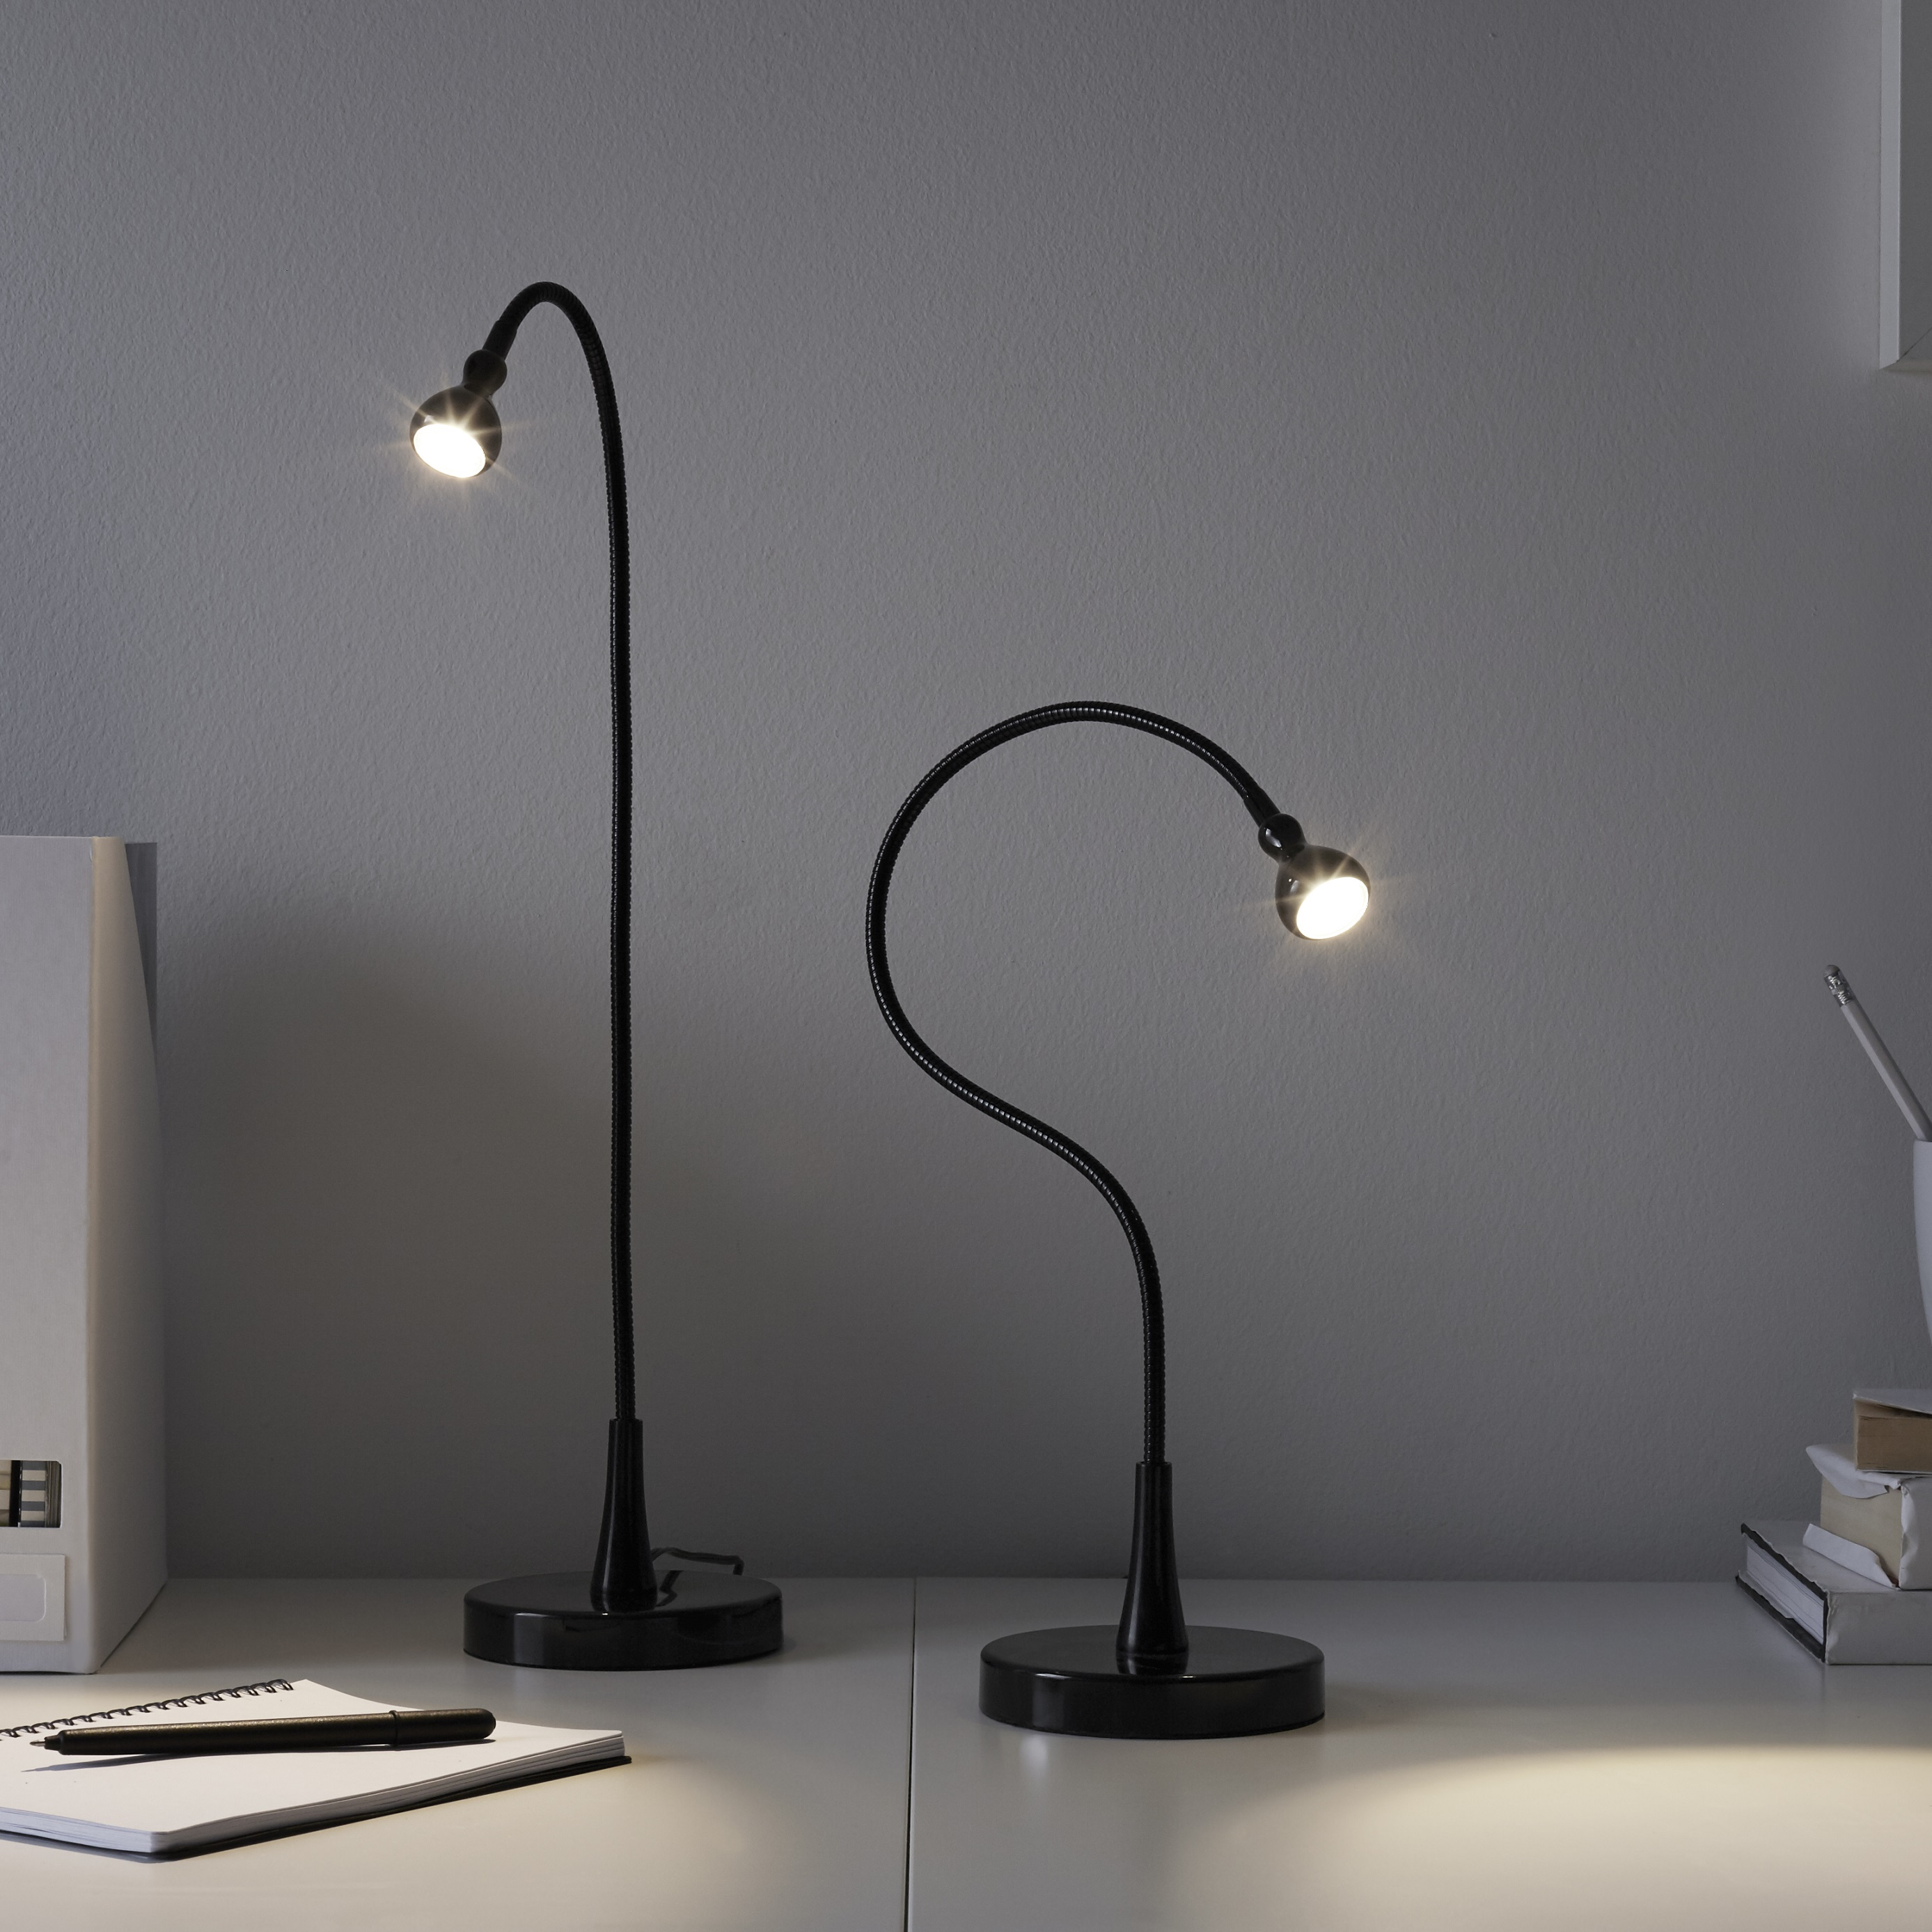 JANSJÖ LED work lamp is now available at RM49 (NP: RM79).